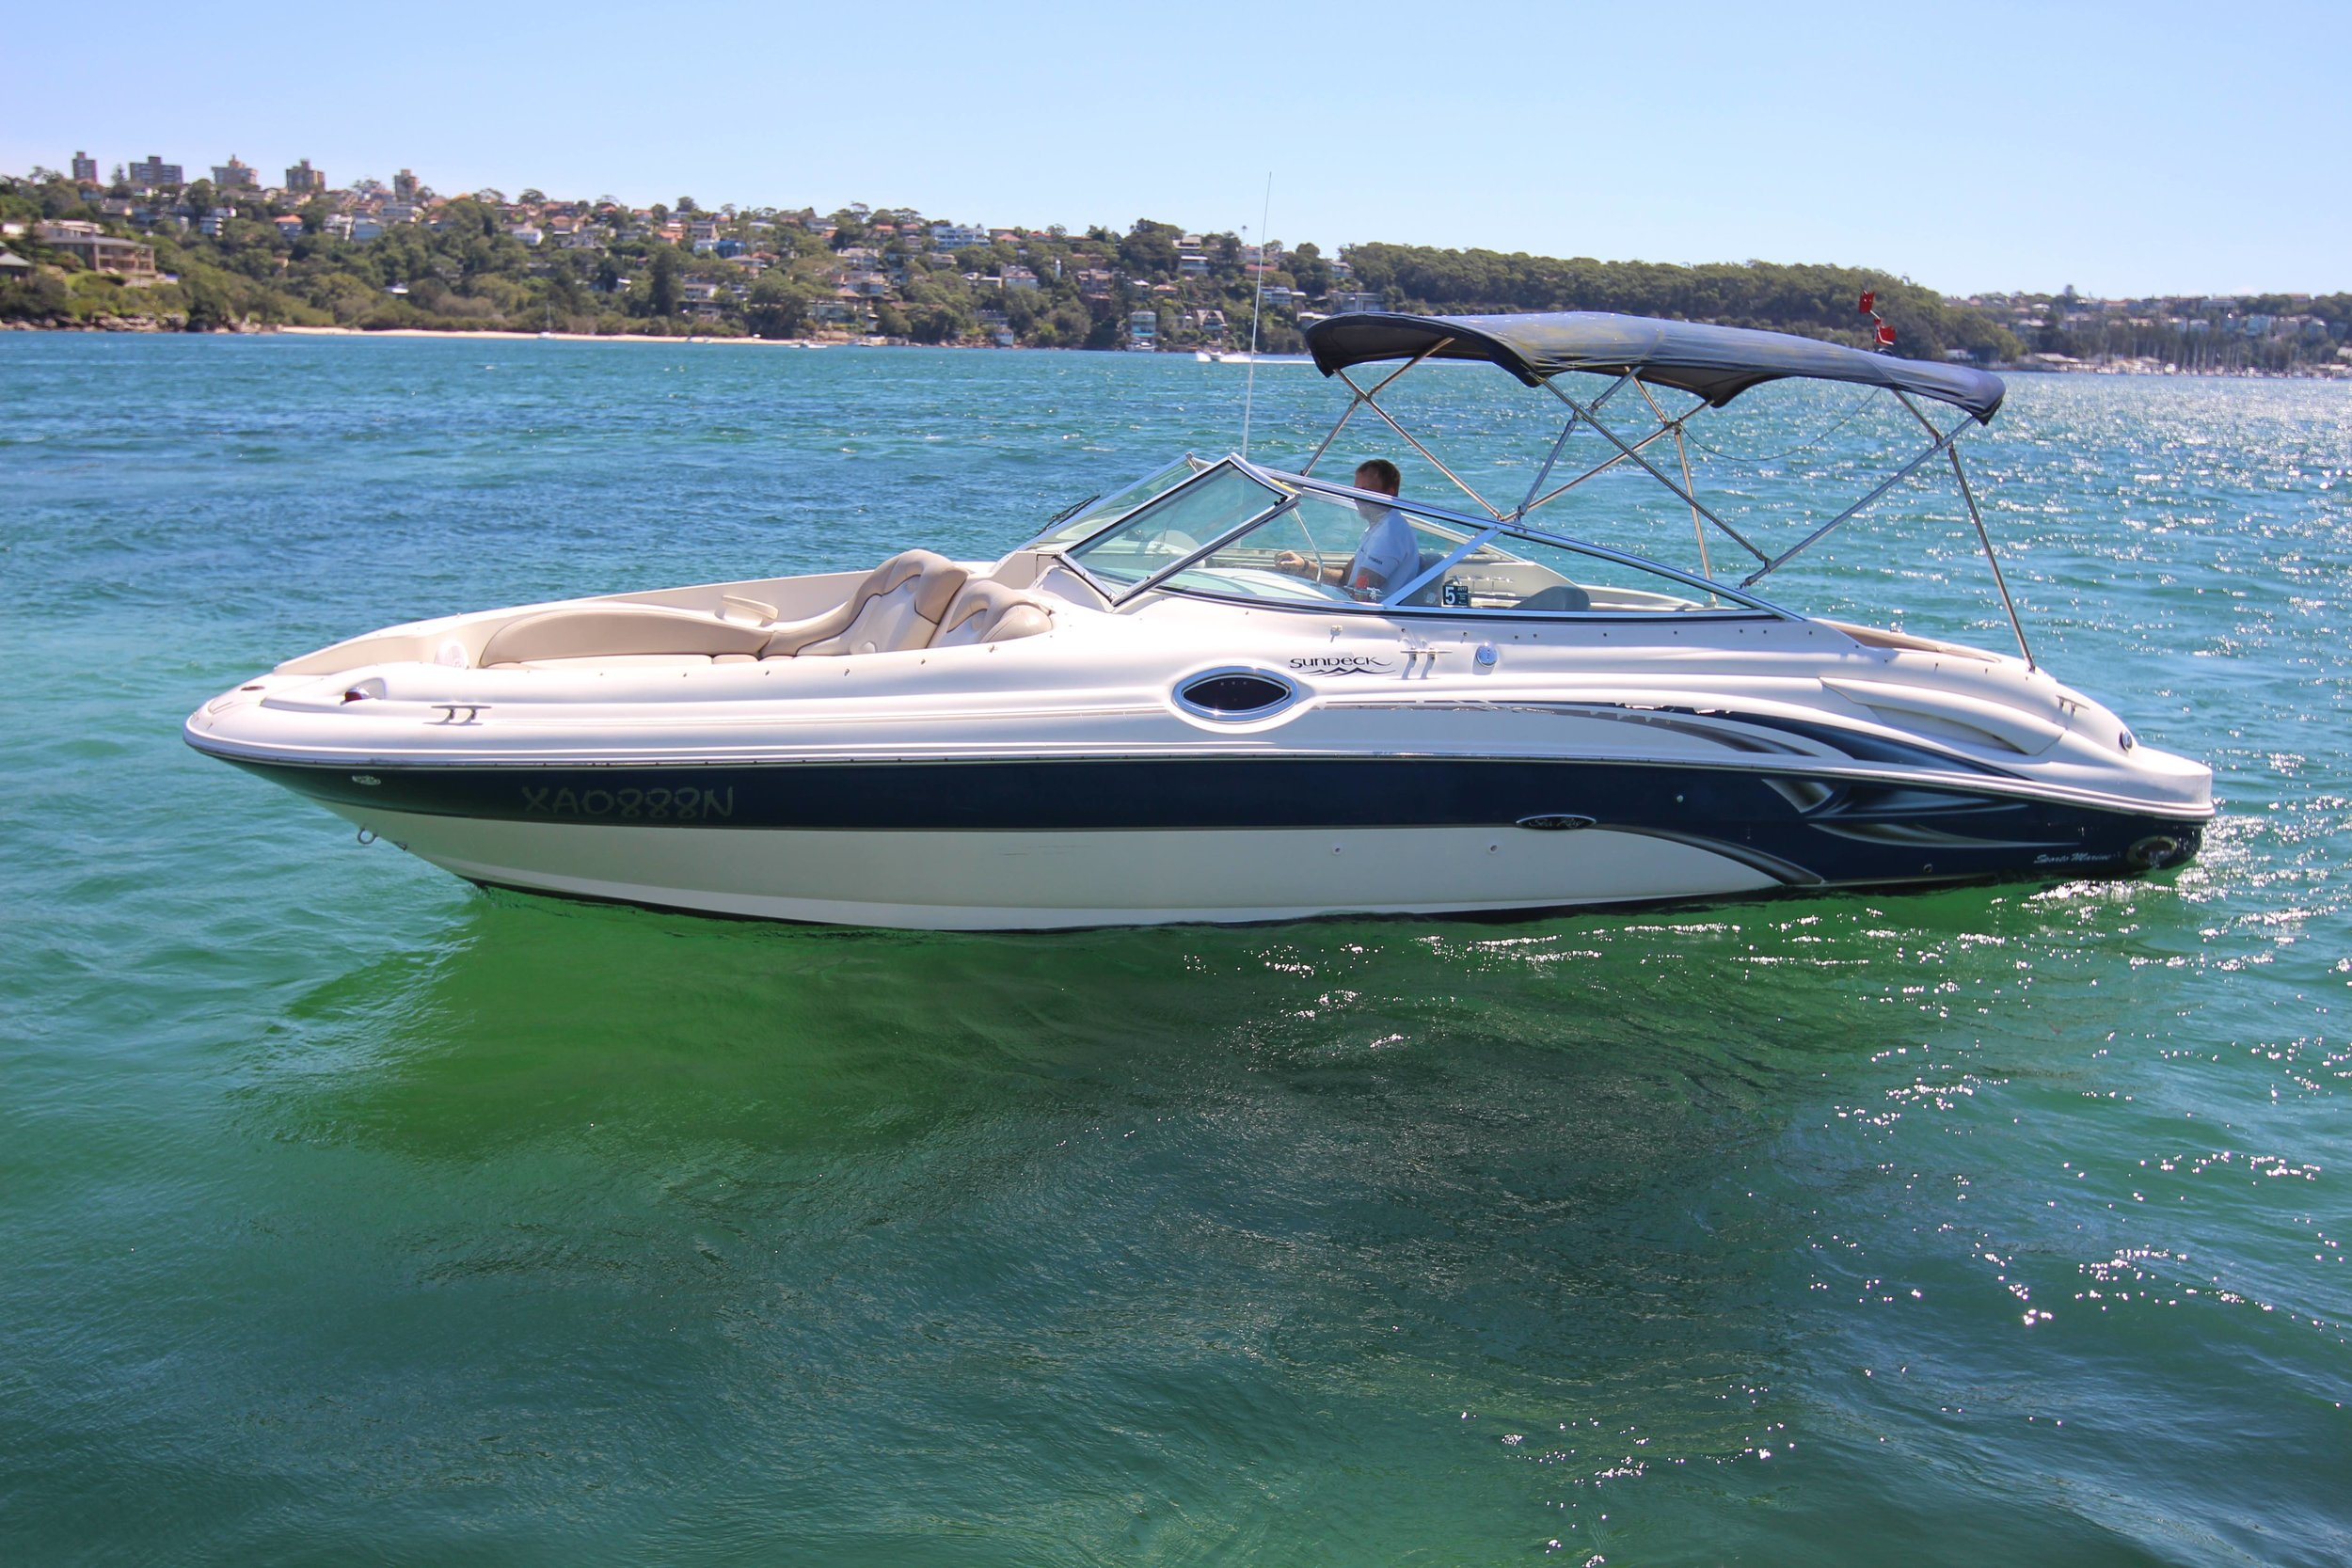 A well maintained and immaculately presented Sea Ray 270 Sundeck.